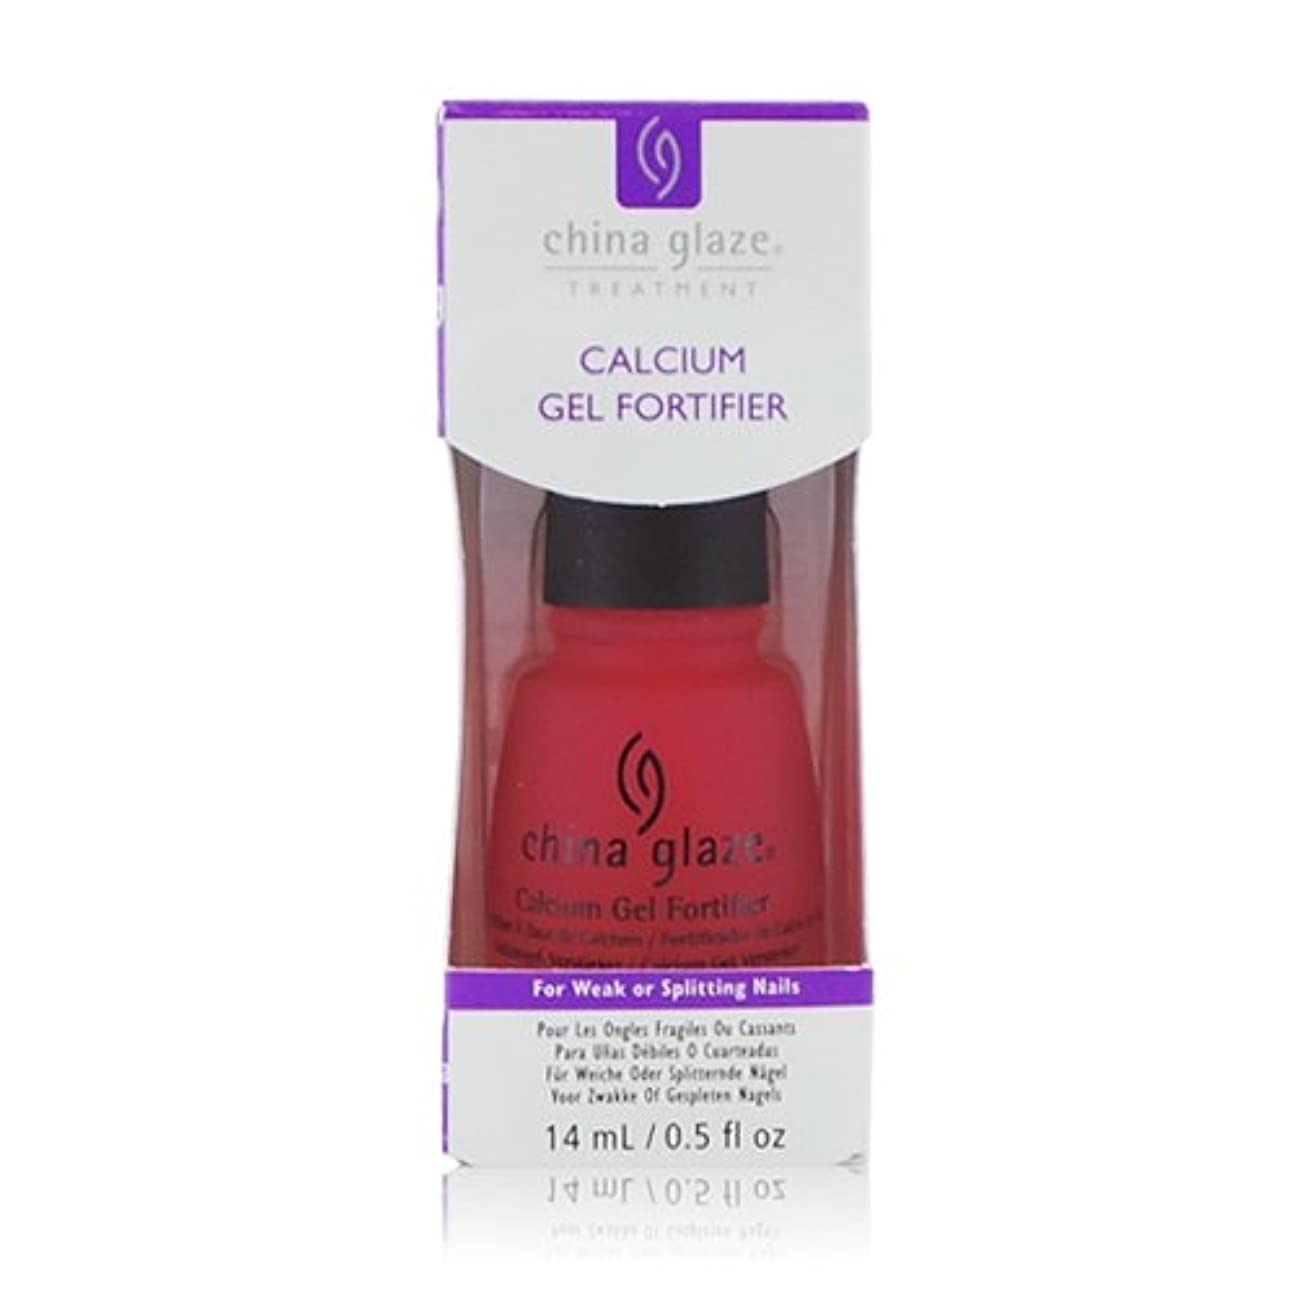 ずっとチーフ公爵夫人(3 Pack) CHINA GLAZE Calcium Gel Fortifier - CGT906 (New Packaging) (並行輸入品)